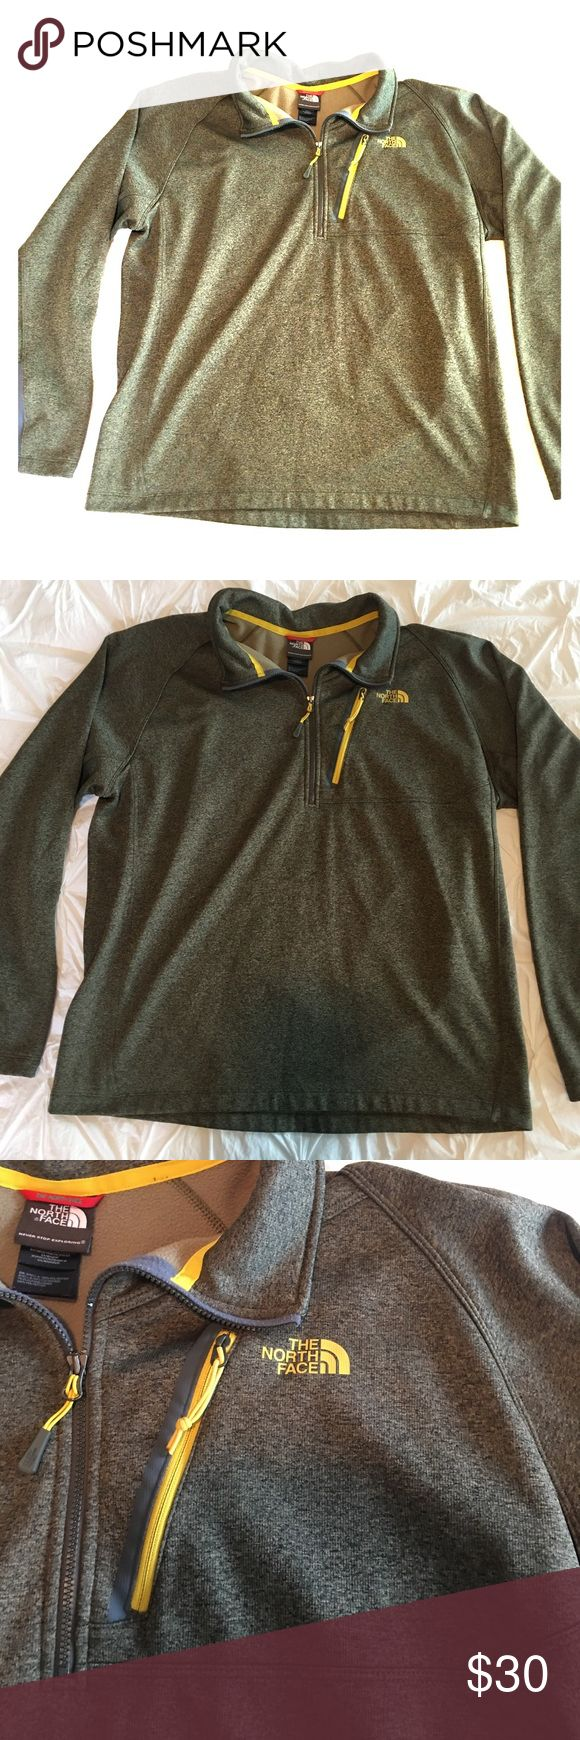 Northface 1/4 Zip Heather Green/Yellow New condition! Heather green with yellow zipper and logo. Fits true to size. The North Face Sweaters Crewneck